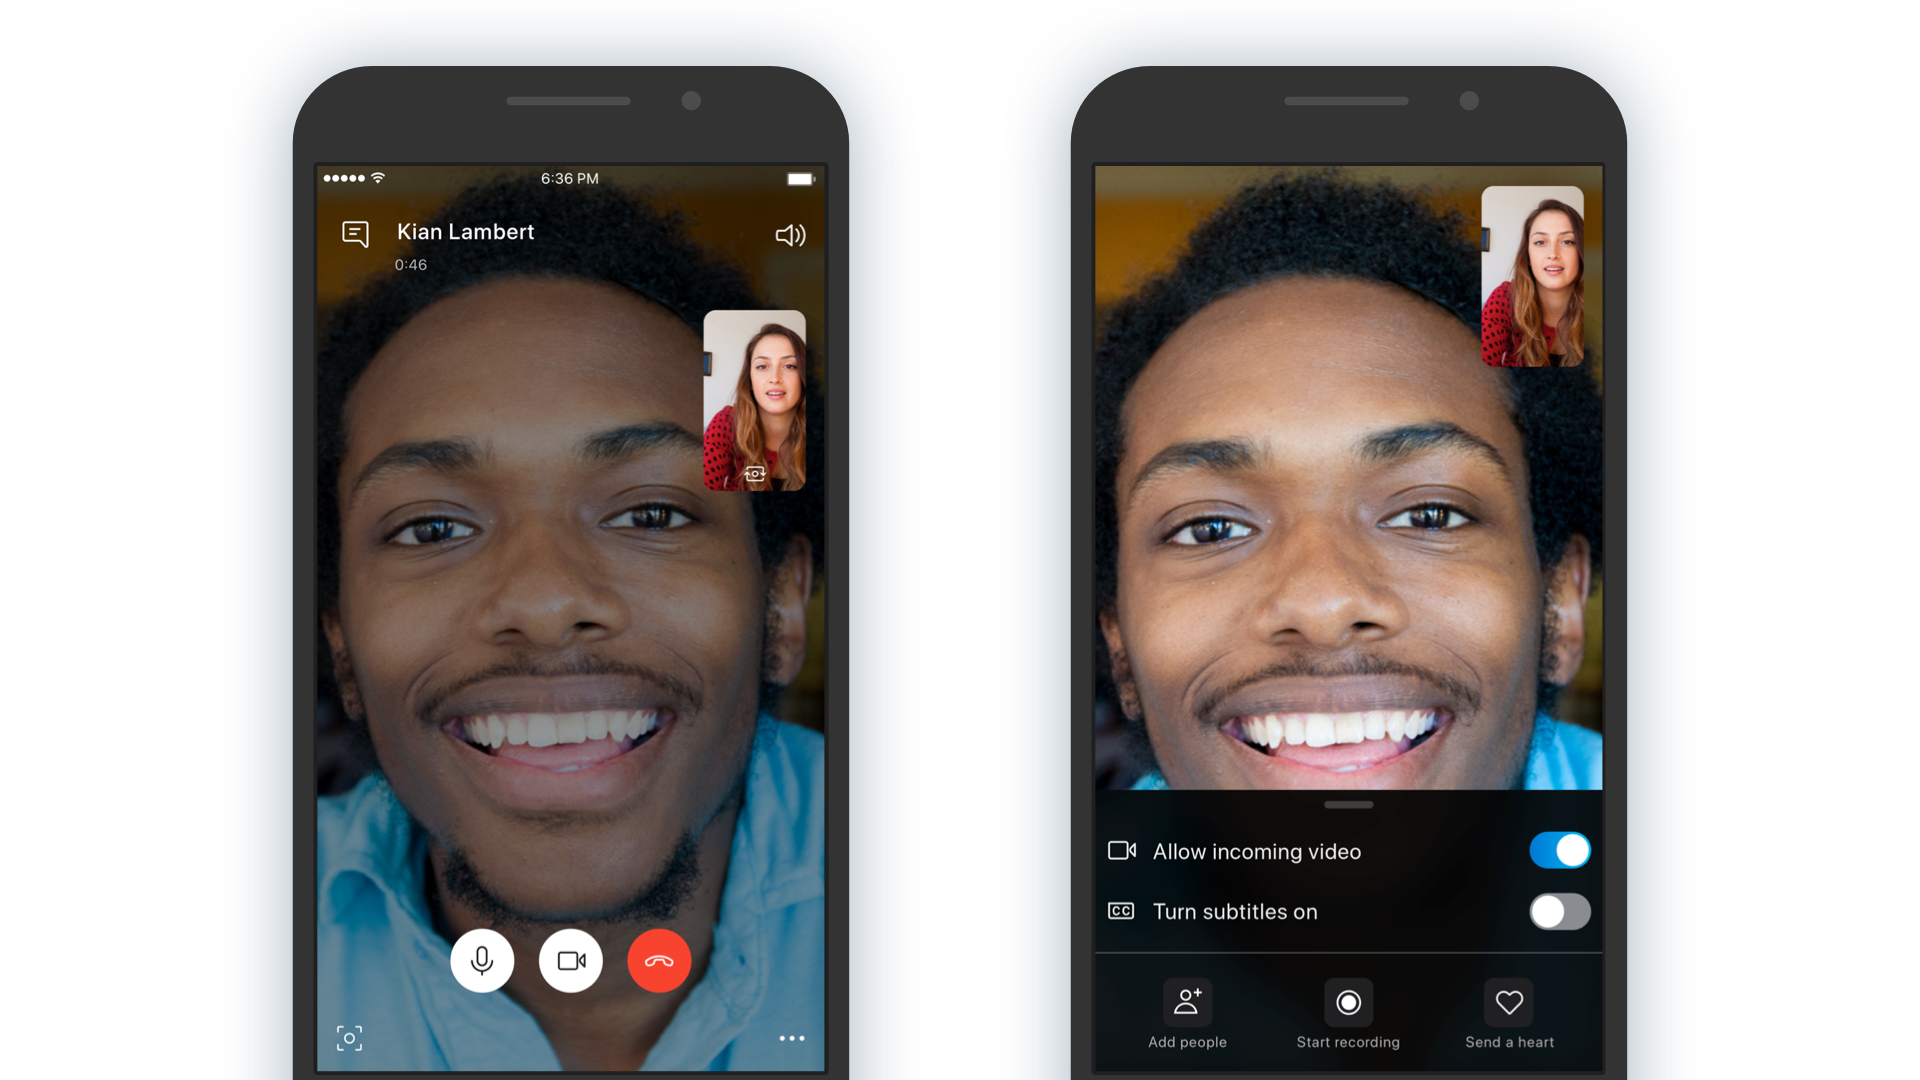 Skype mobile gets improved video call experience in latest